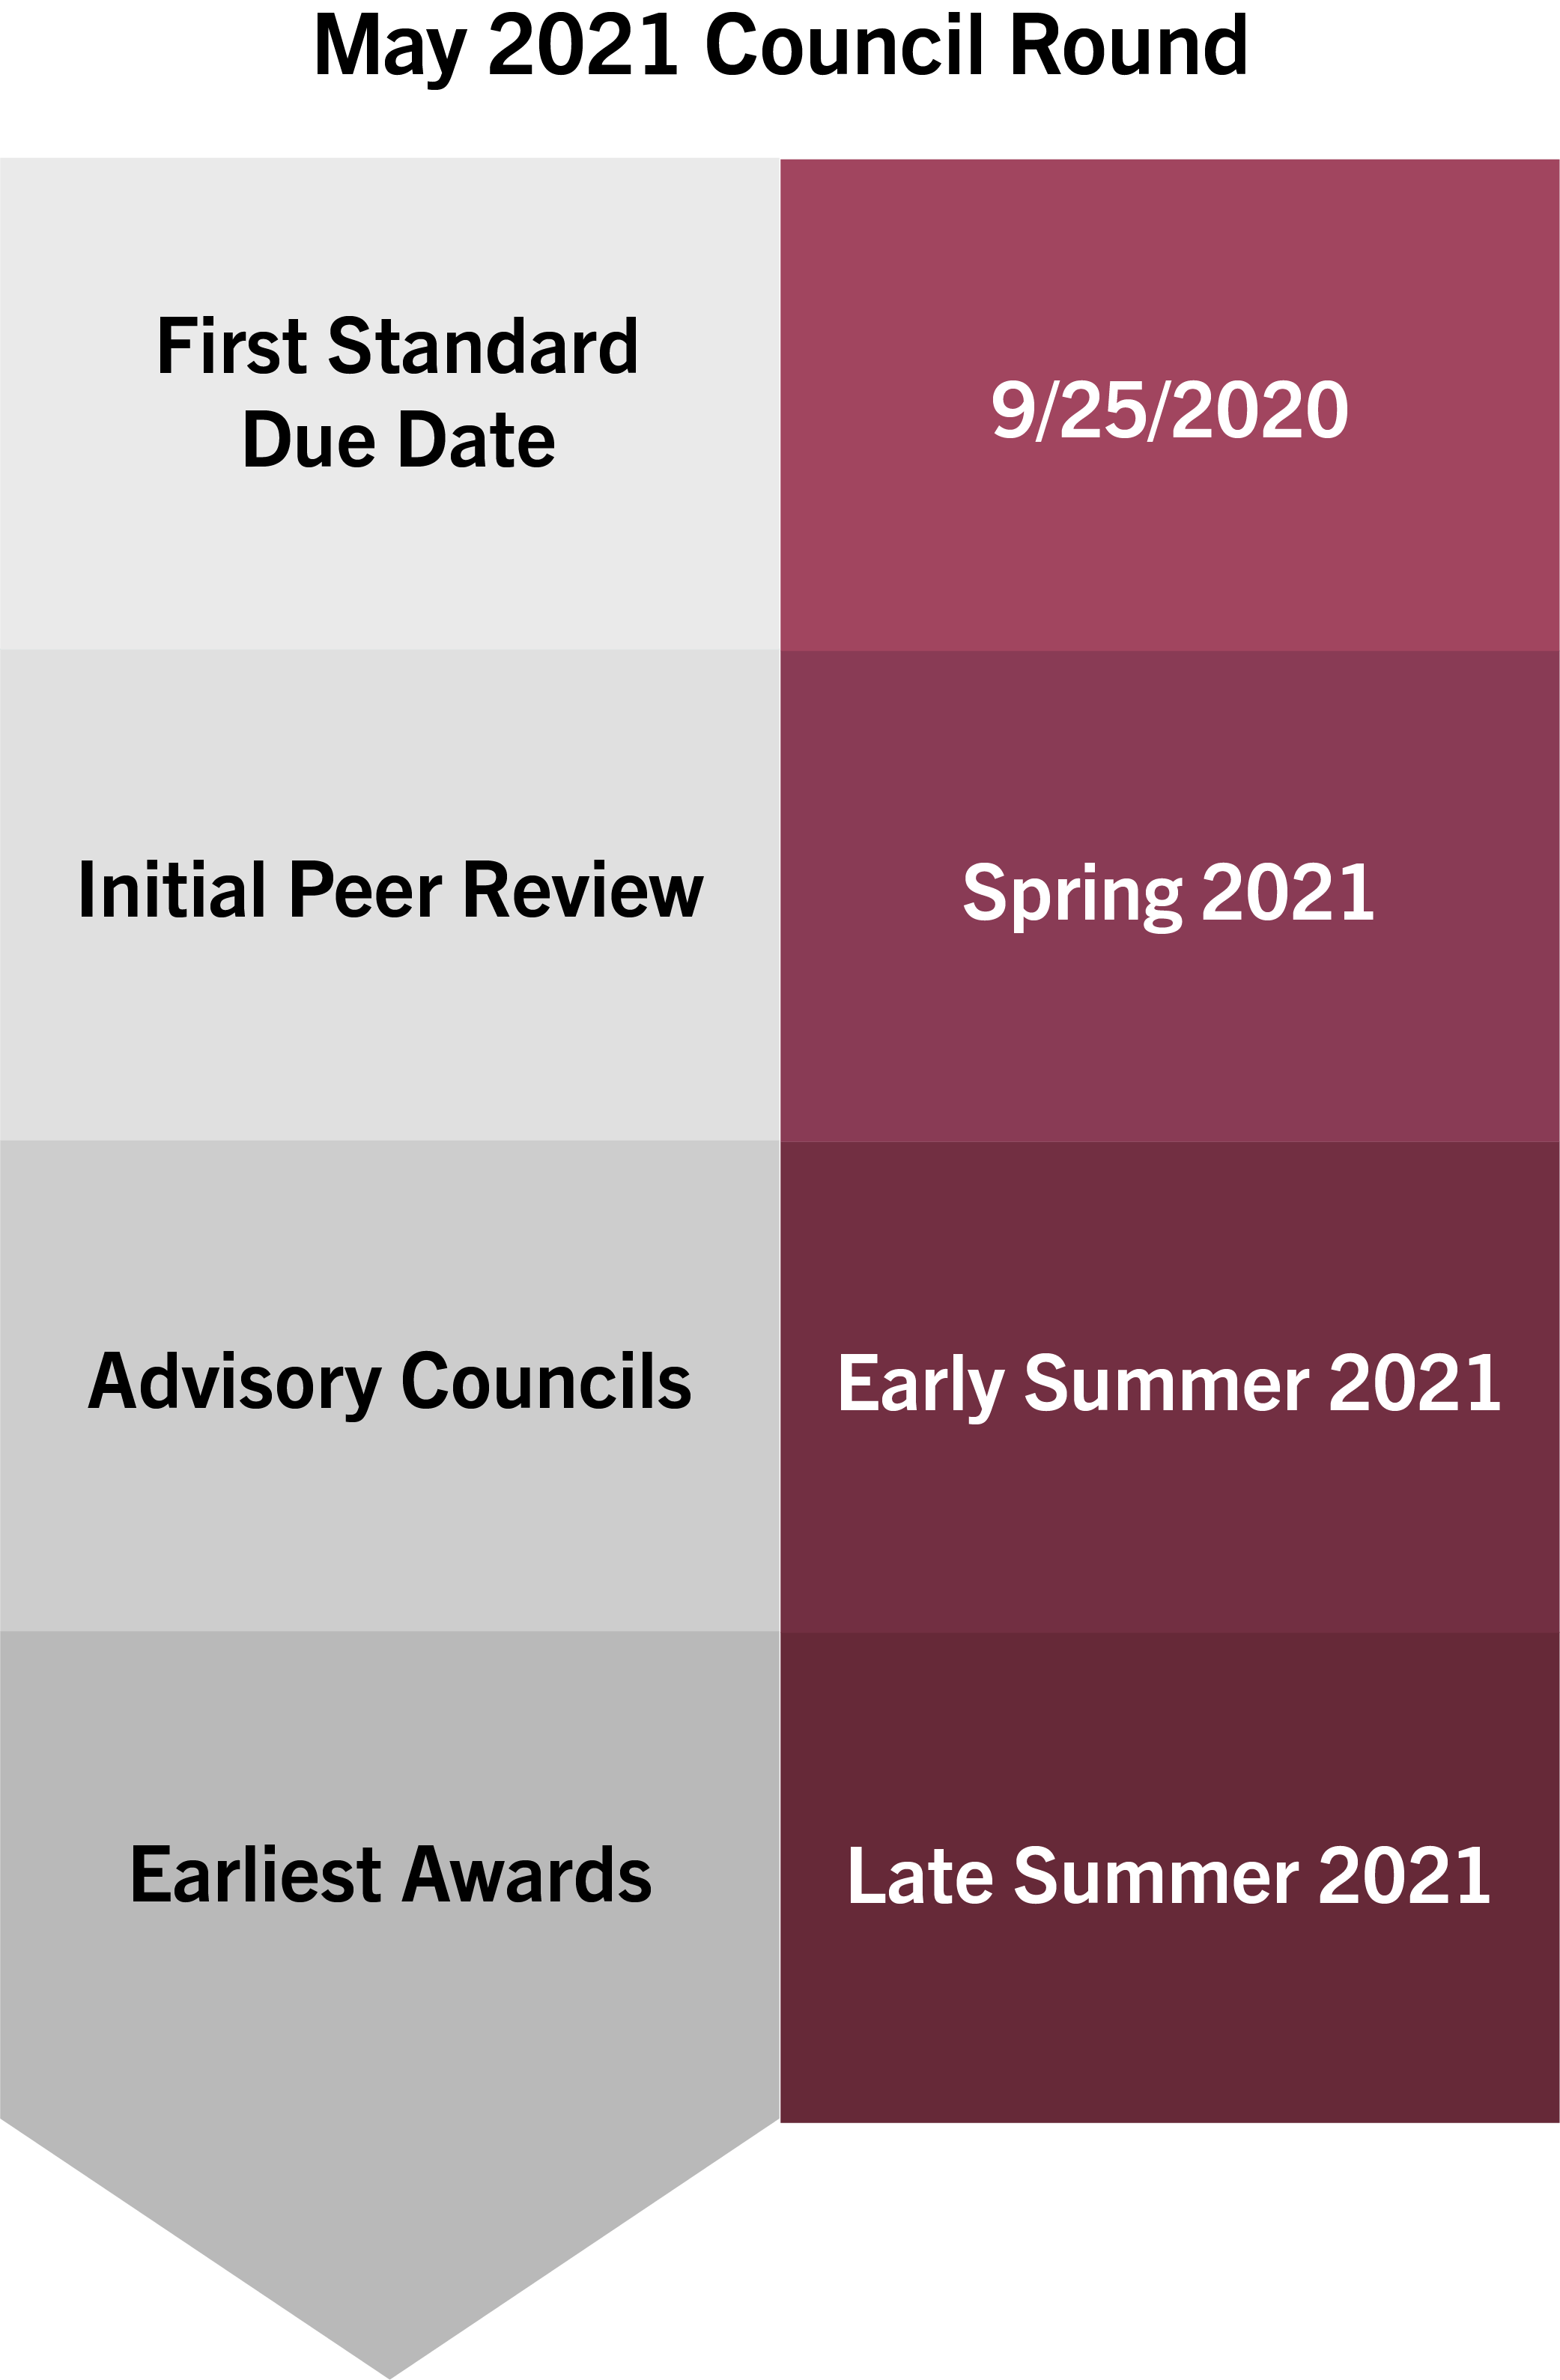 process flow for May 2021 Council Round - First Standard due date 9/25/2020, initial peer review Spring 2020, Advisory councils early Summer 2021, earliest awards late Summer 2021.